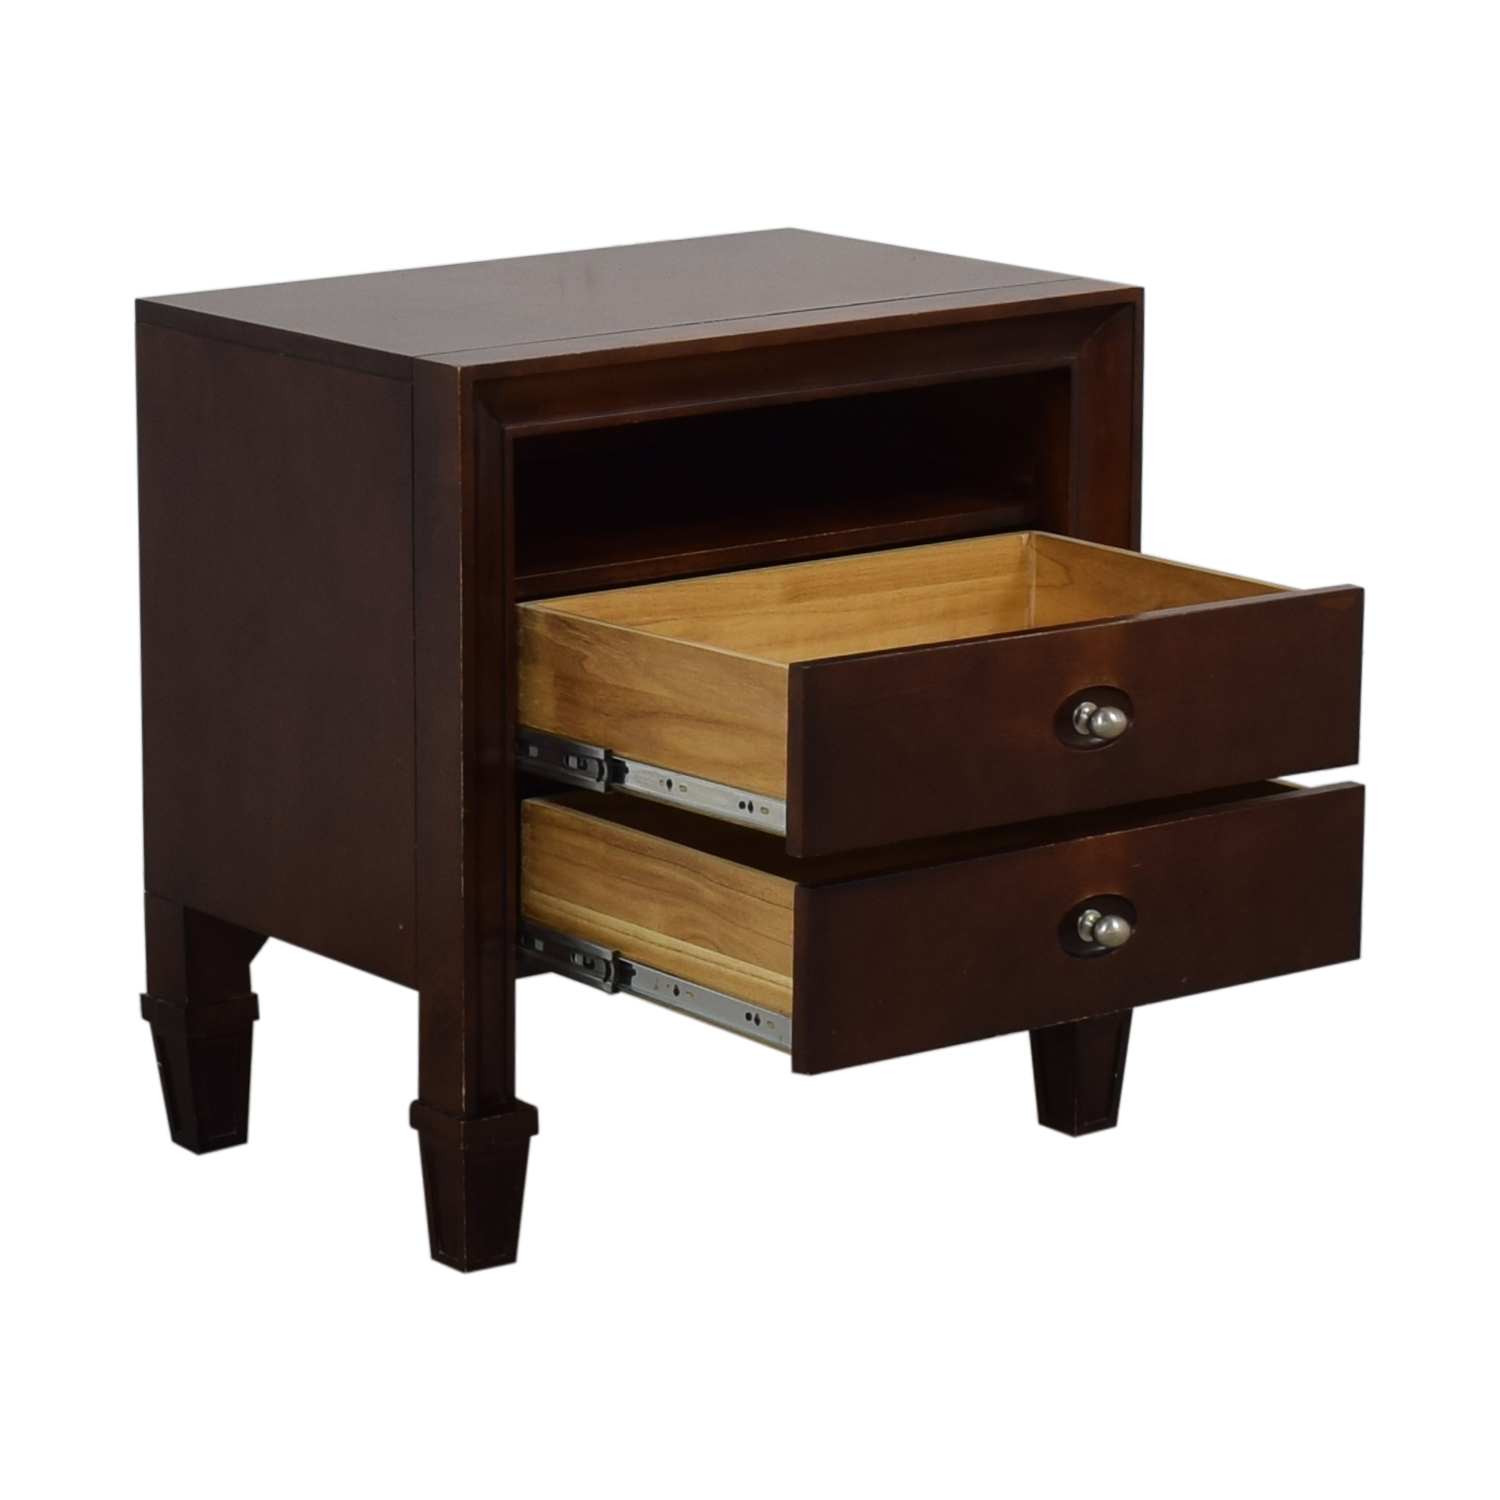 Harbor Home Harbor Home International Night Stand coupon